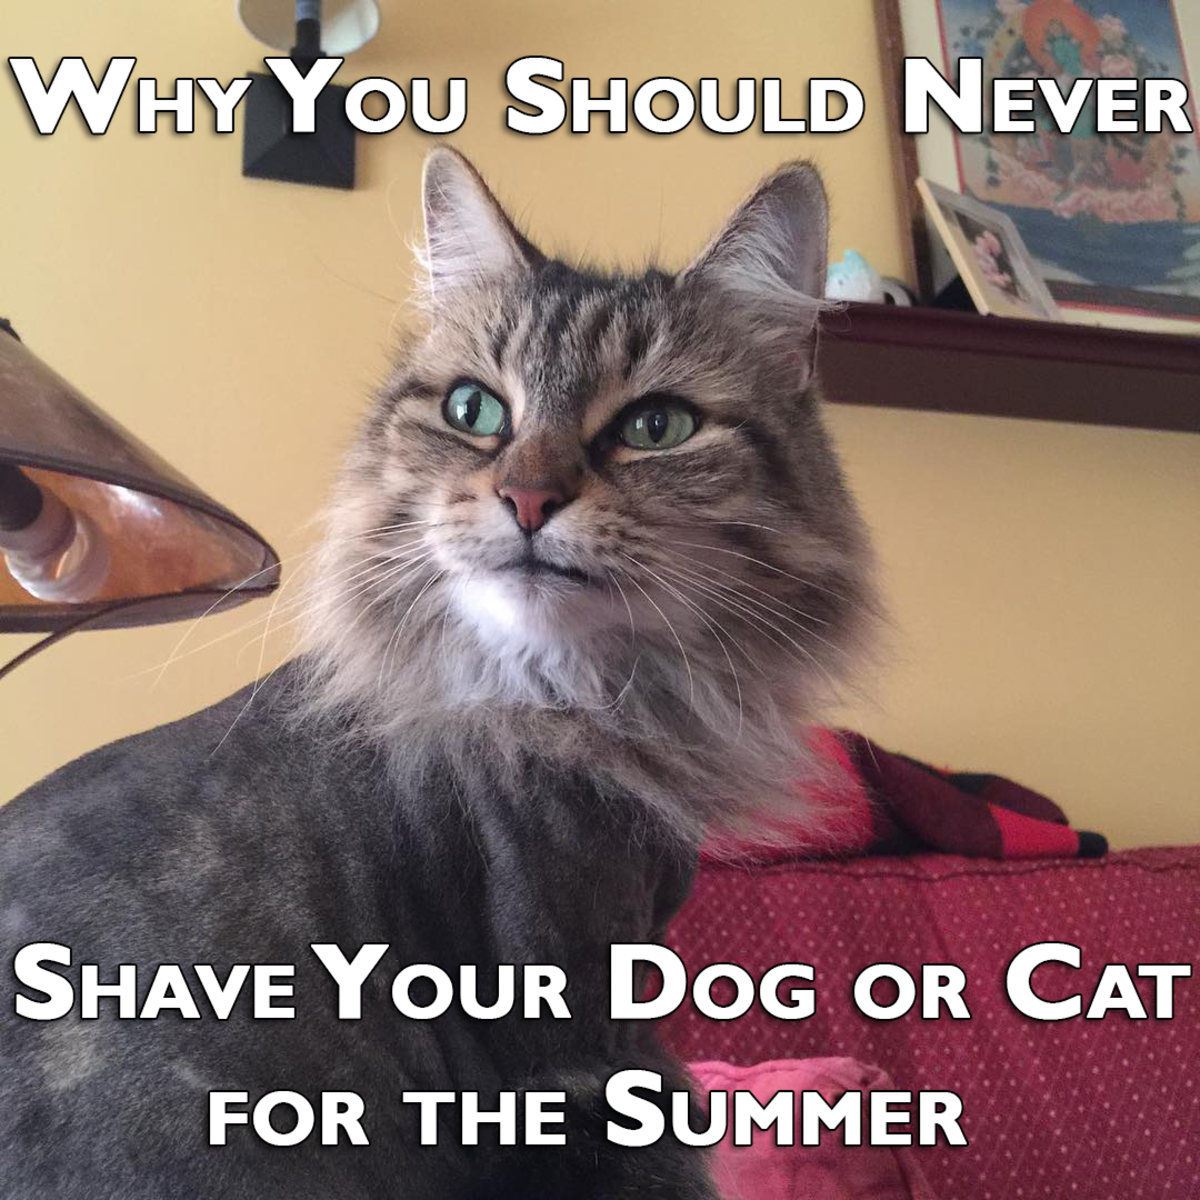 Does a dog or cat really need to be shaved?